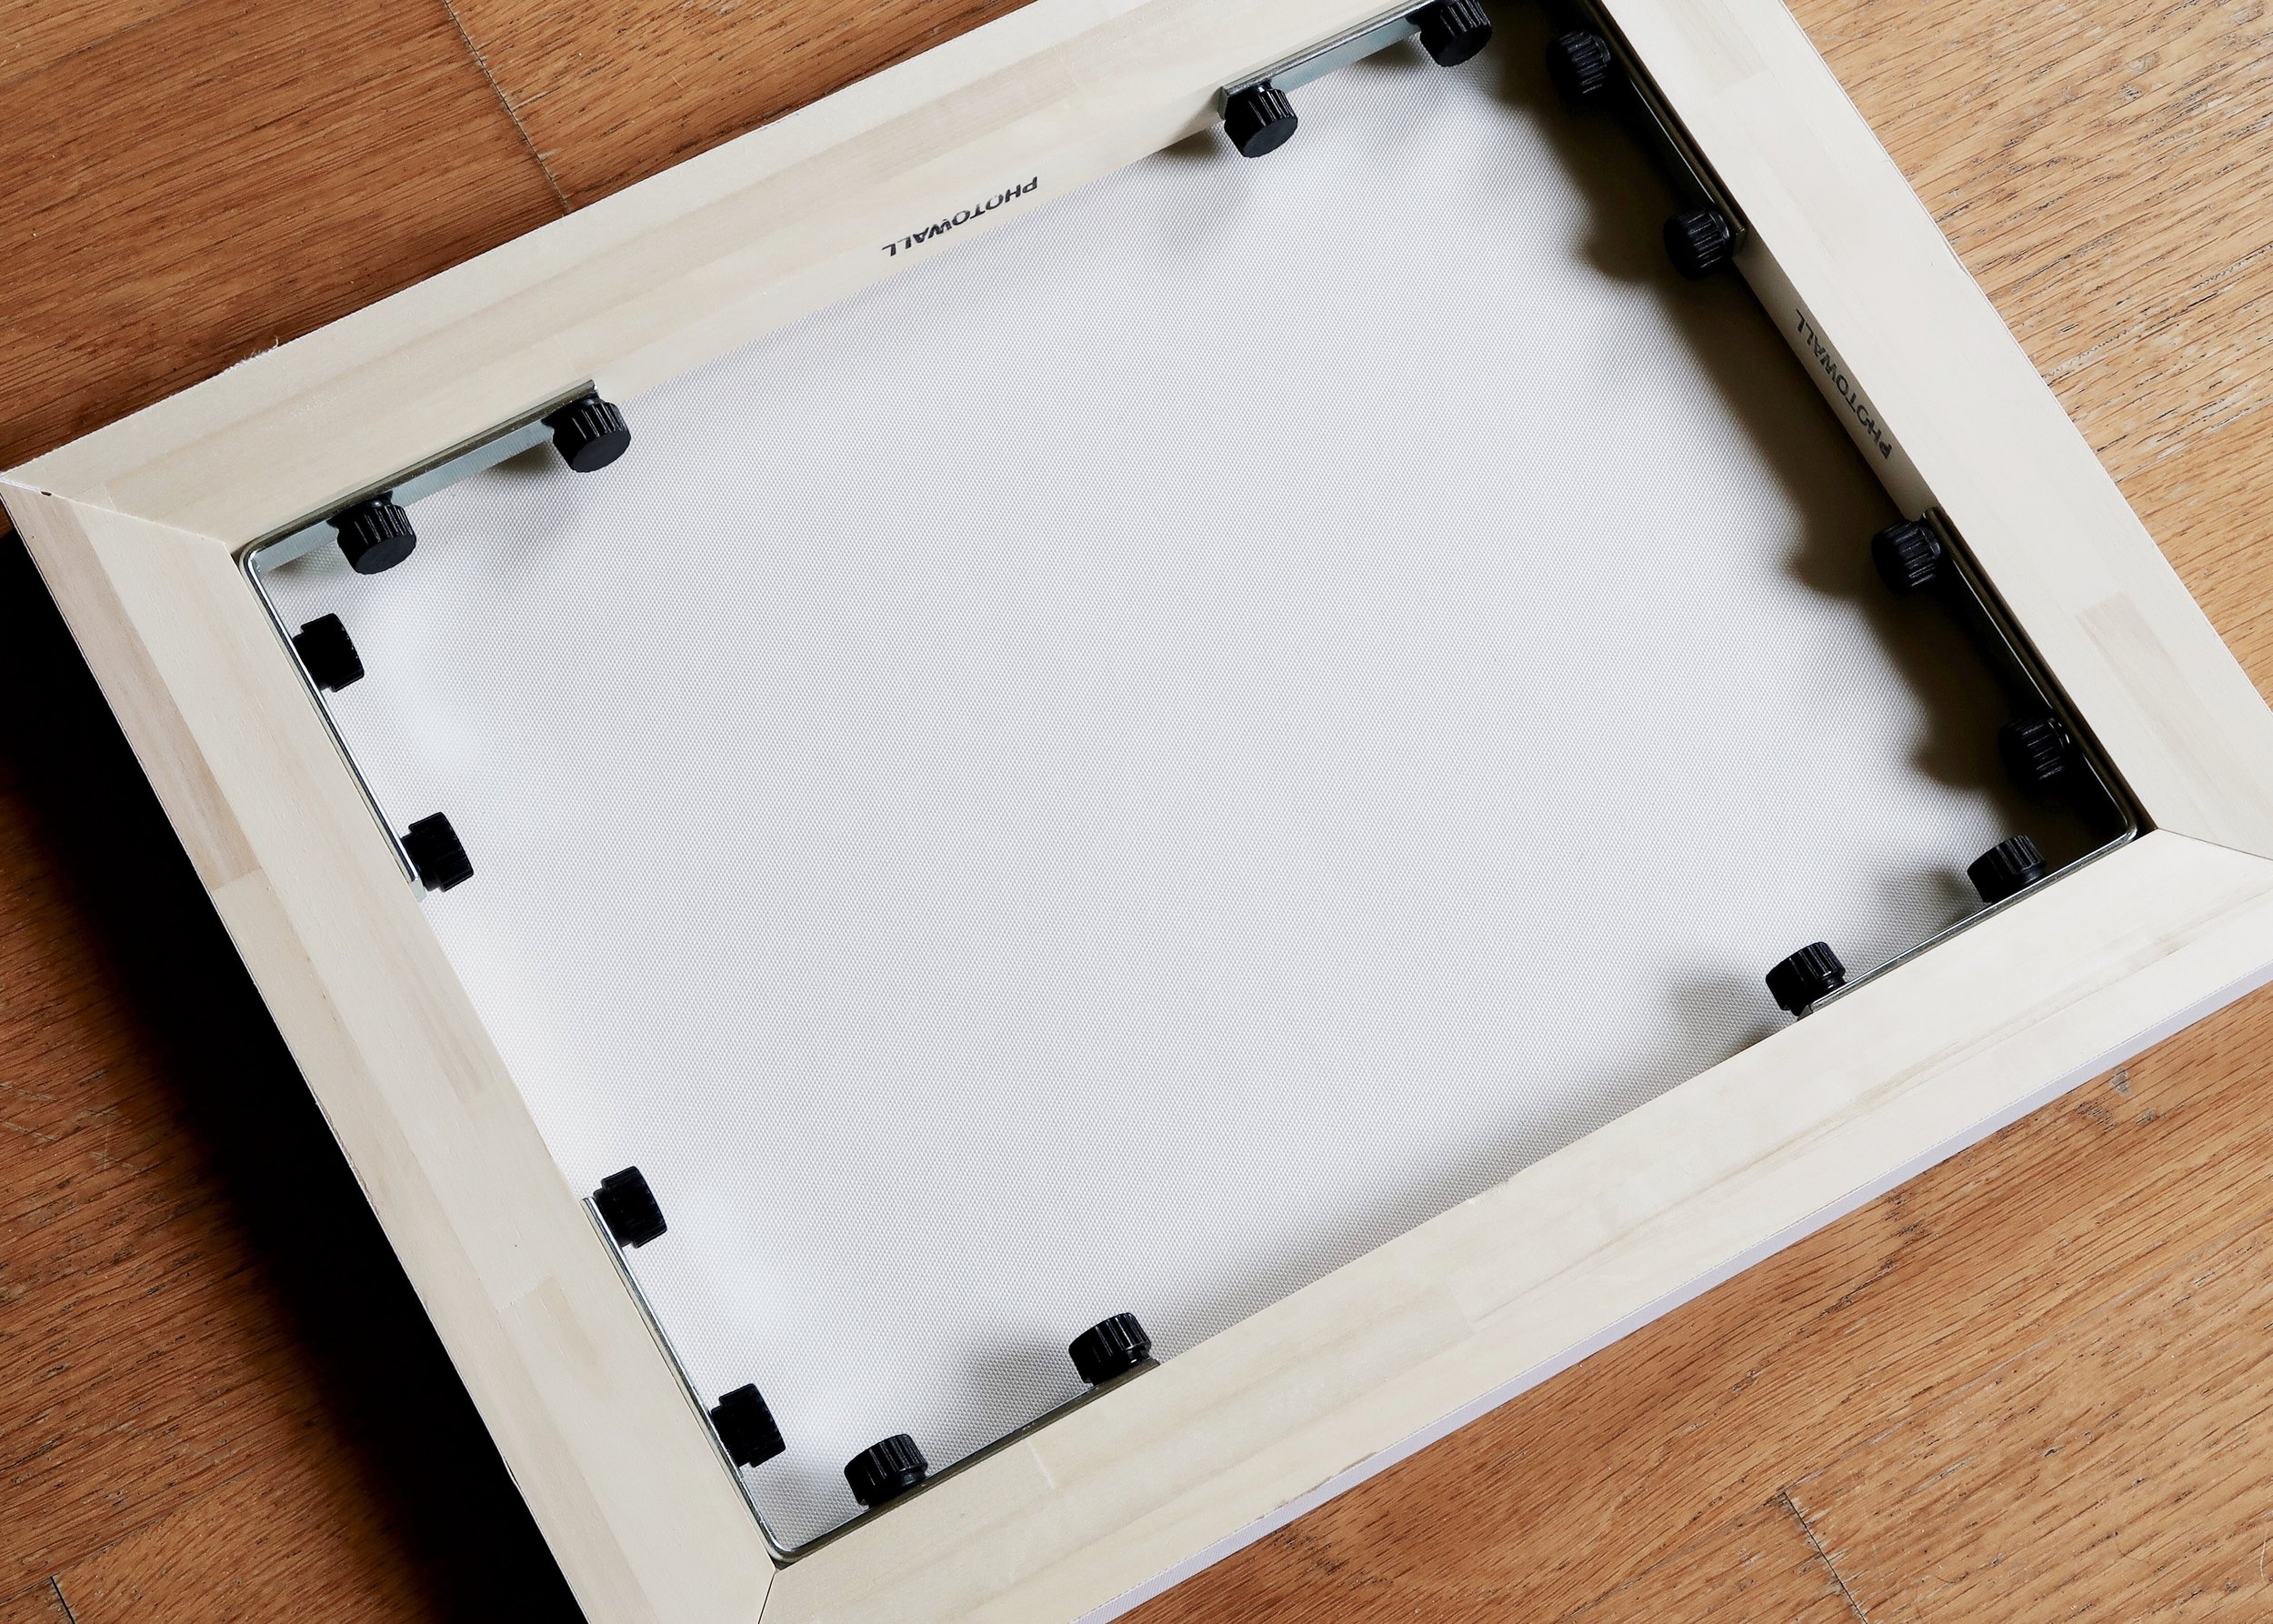 5. - Follow the instructions to stick each side of the wooden frame to the back of the canvas, before folding them in towards one another and securing them metal corner plates and screws. Photowall kindly do all the drilling and so all you have to do is twist the screws into the predrilled holes. Finally, wrap your gift or use the included hanging solution to get your canvas up on the wall!